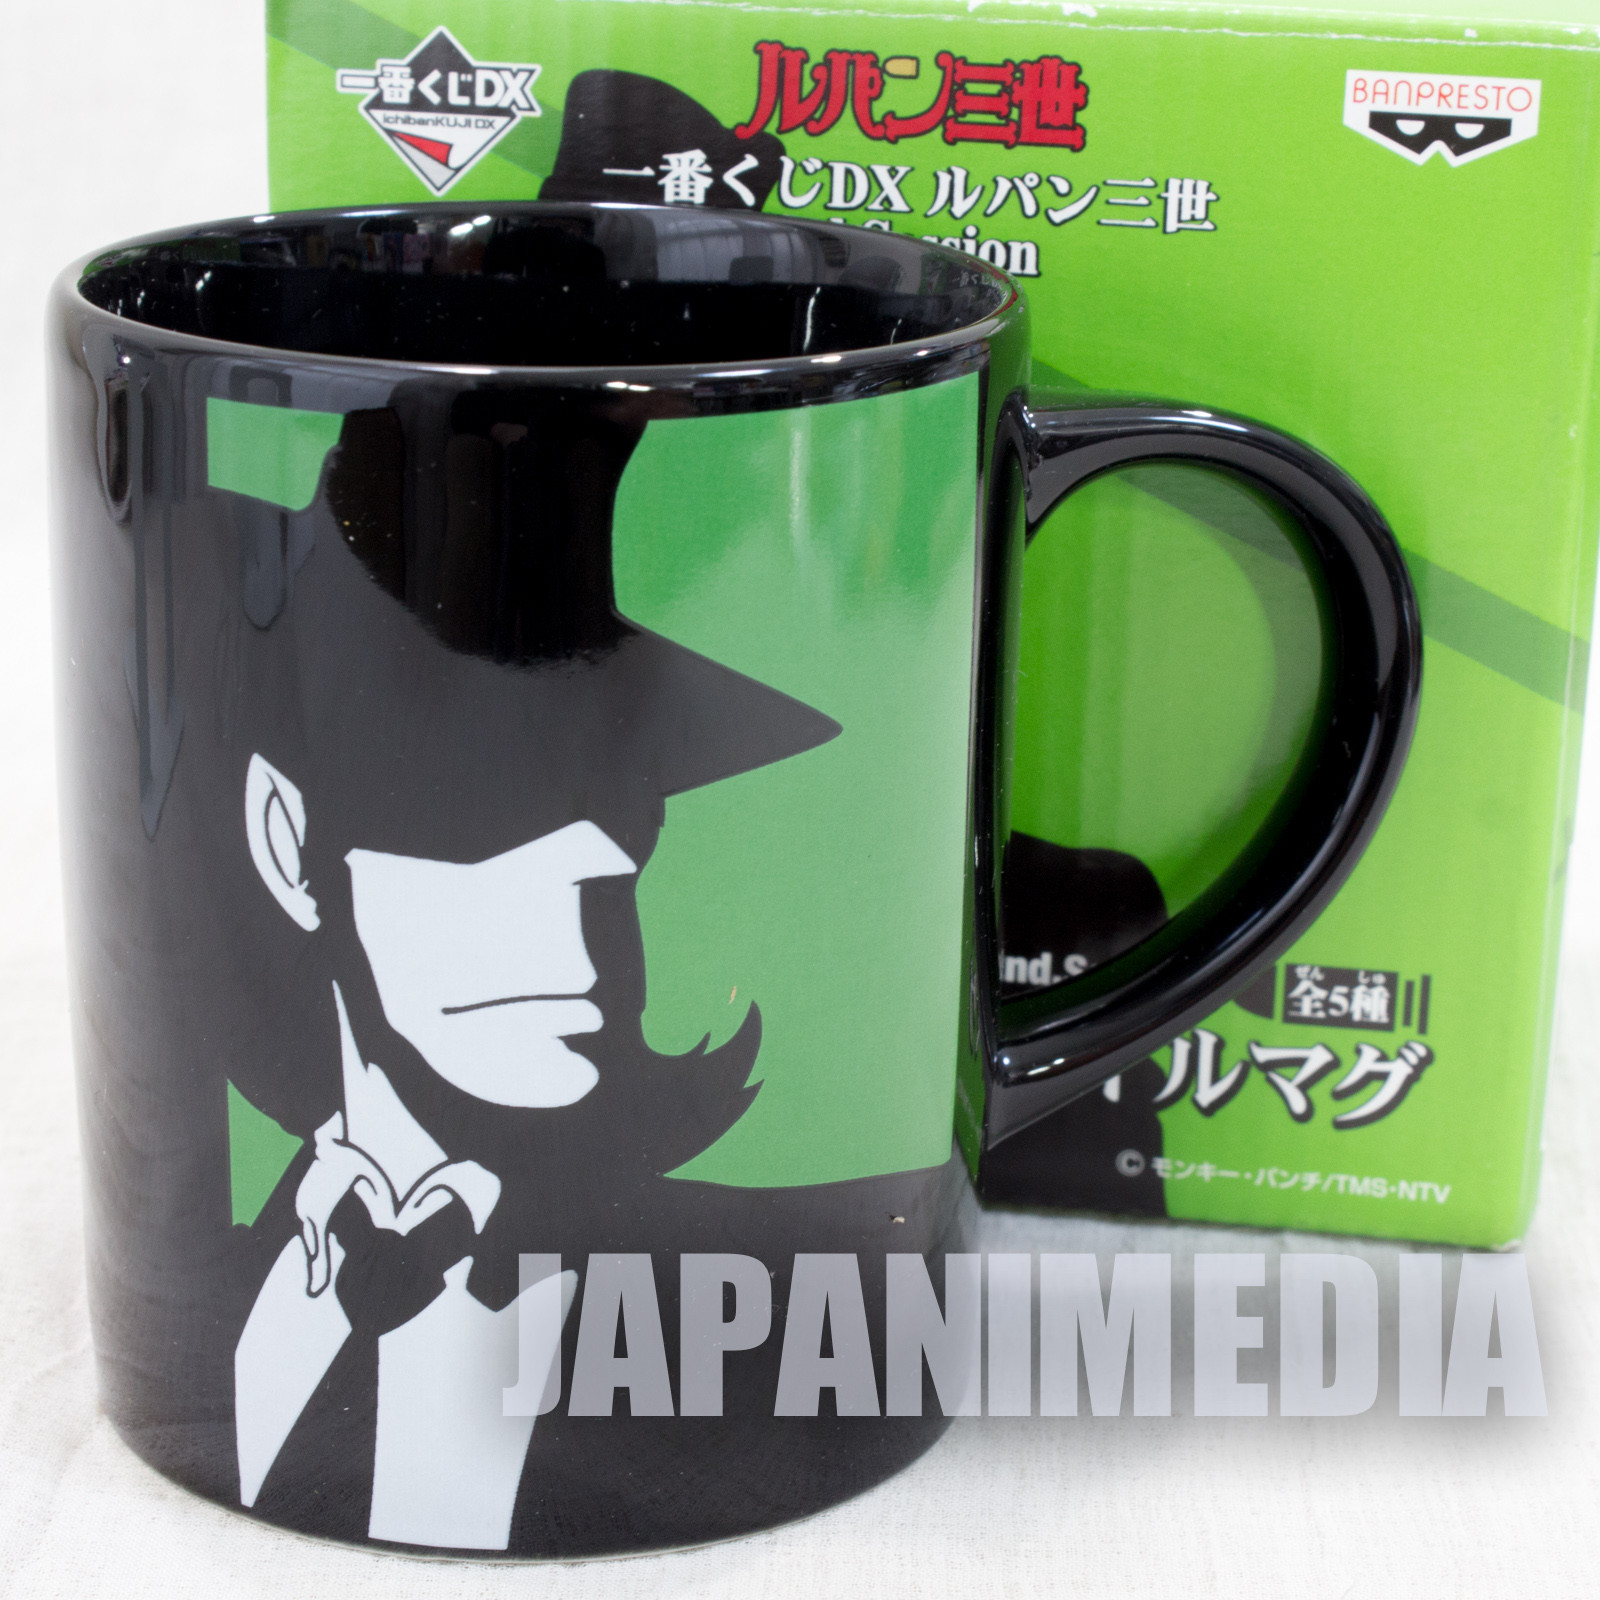 Lupin the Third (3rd) Daisuke Jigen Cool style Mug JAPAN ANIME MANGA